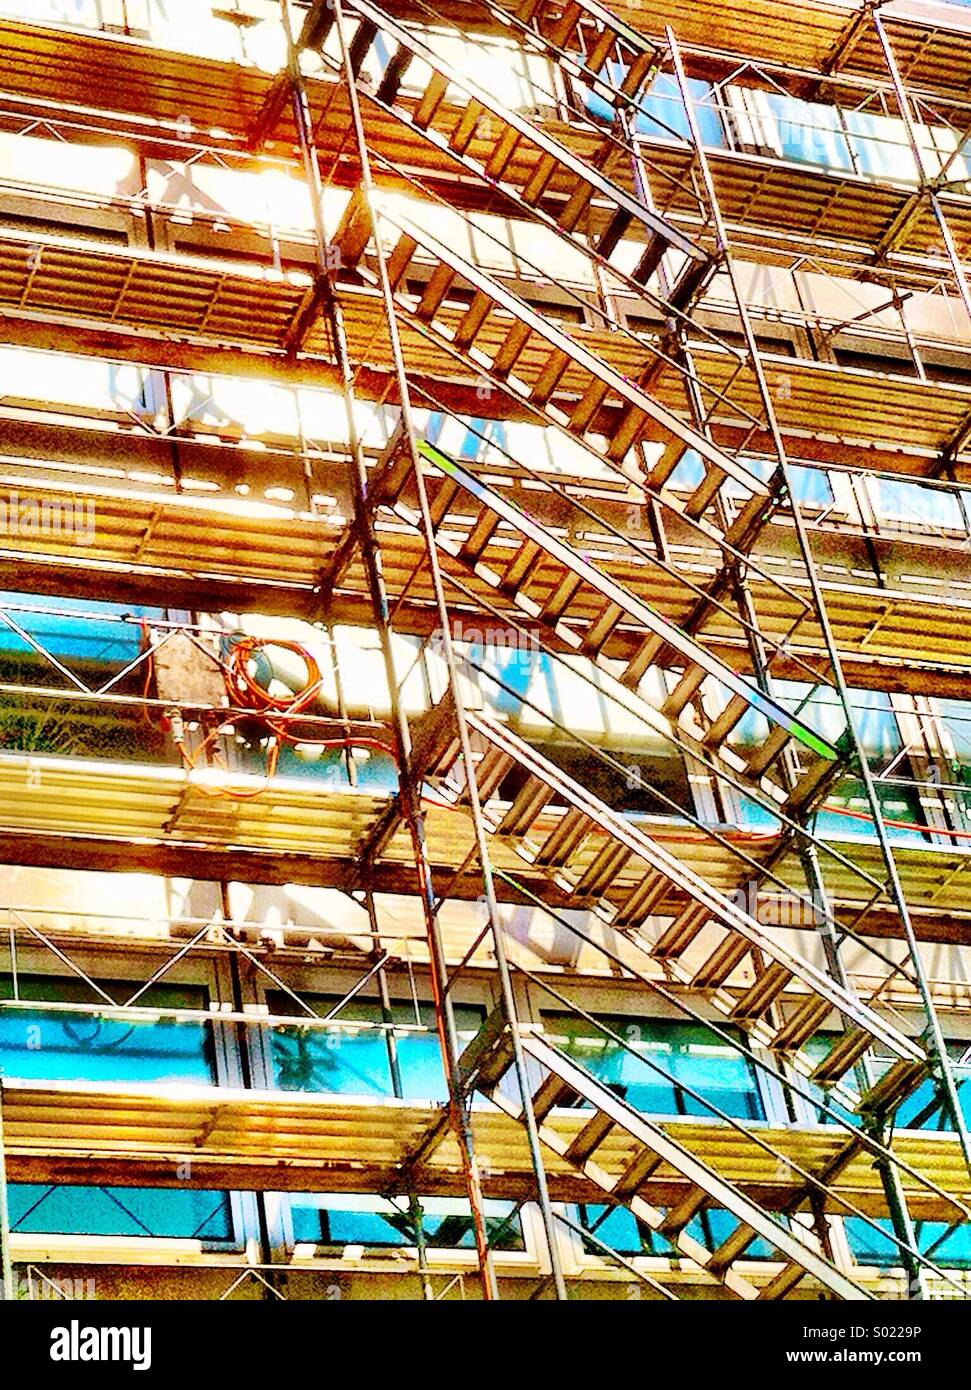 Building undergoing renovation with scaffolding - Stock Image